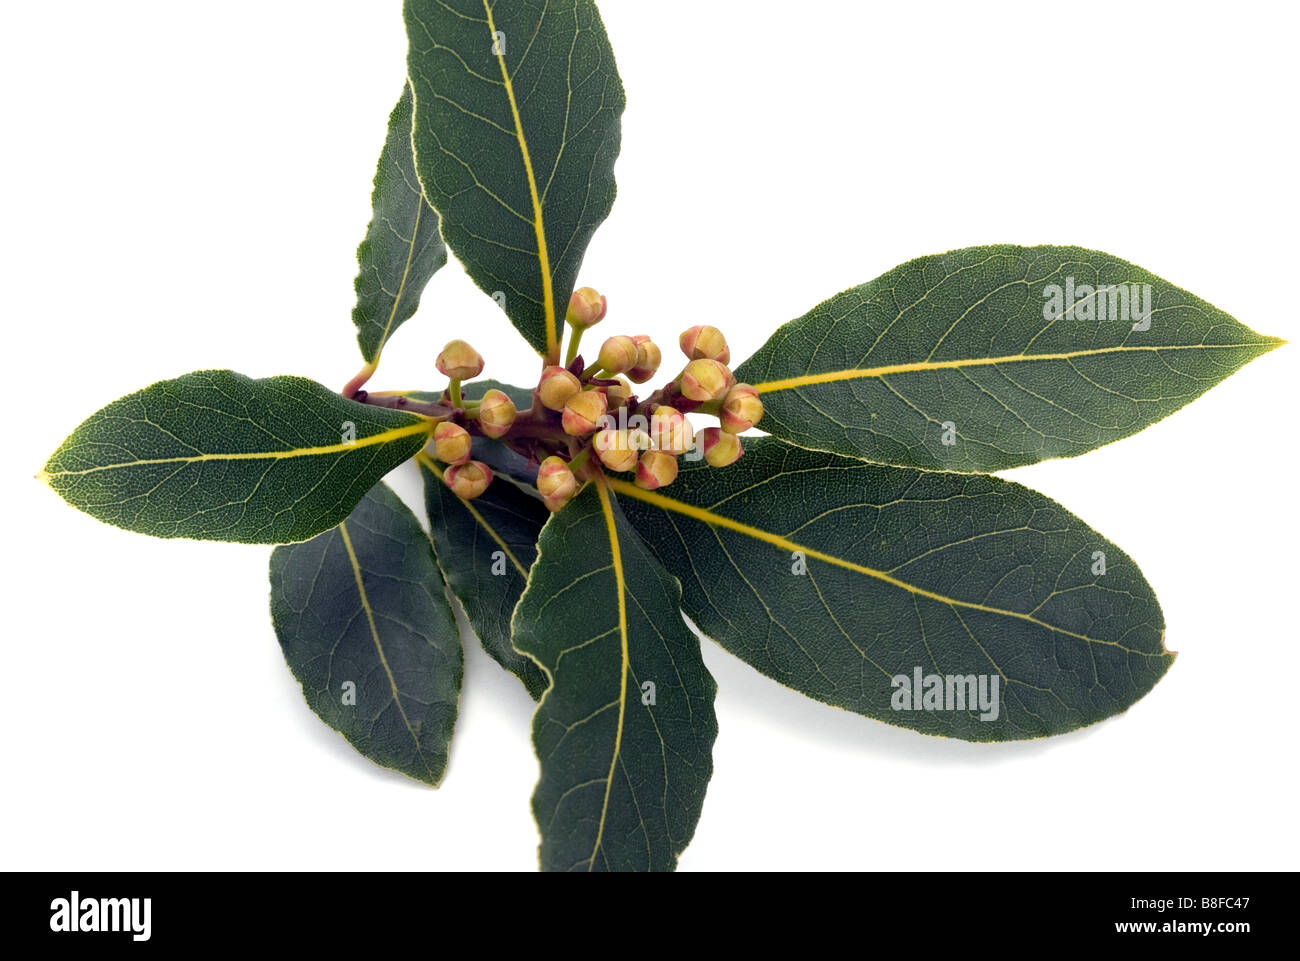 Flower buds on a bay 'laurus nobilis'  branch - Stock Image